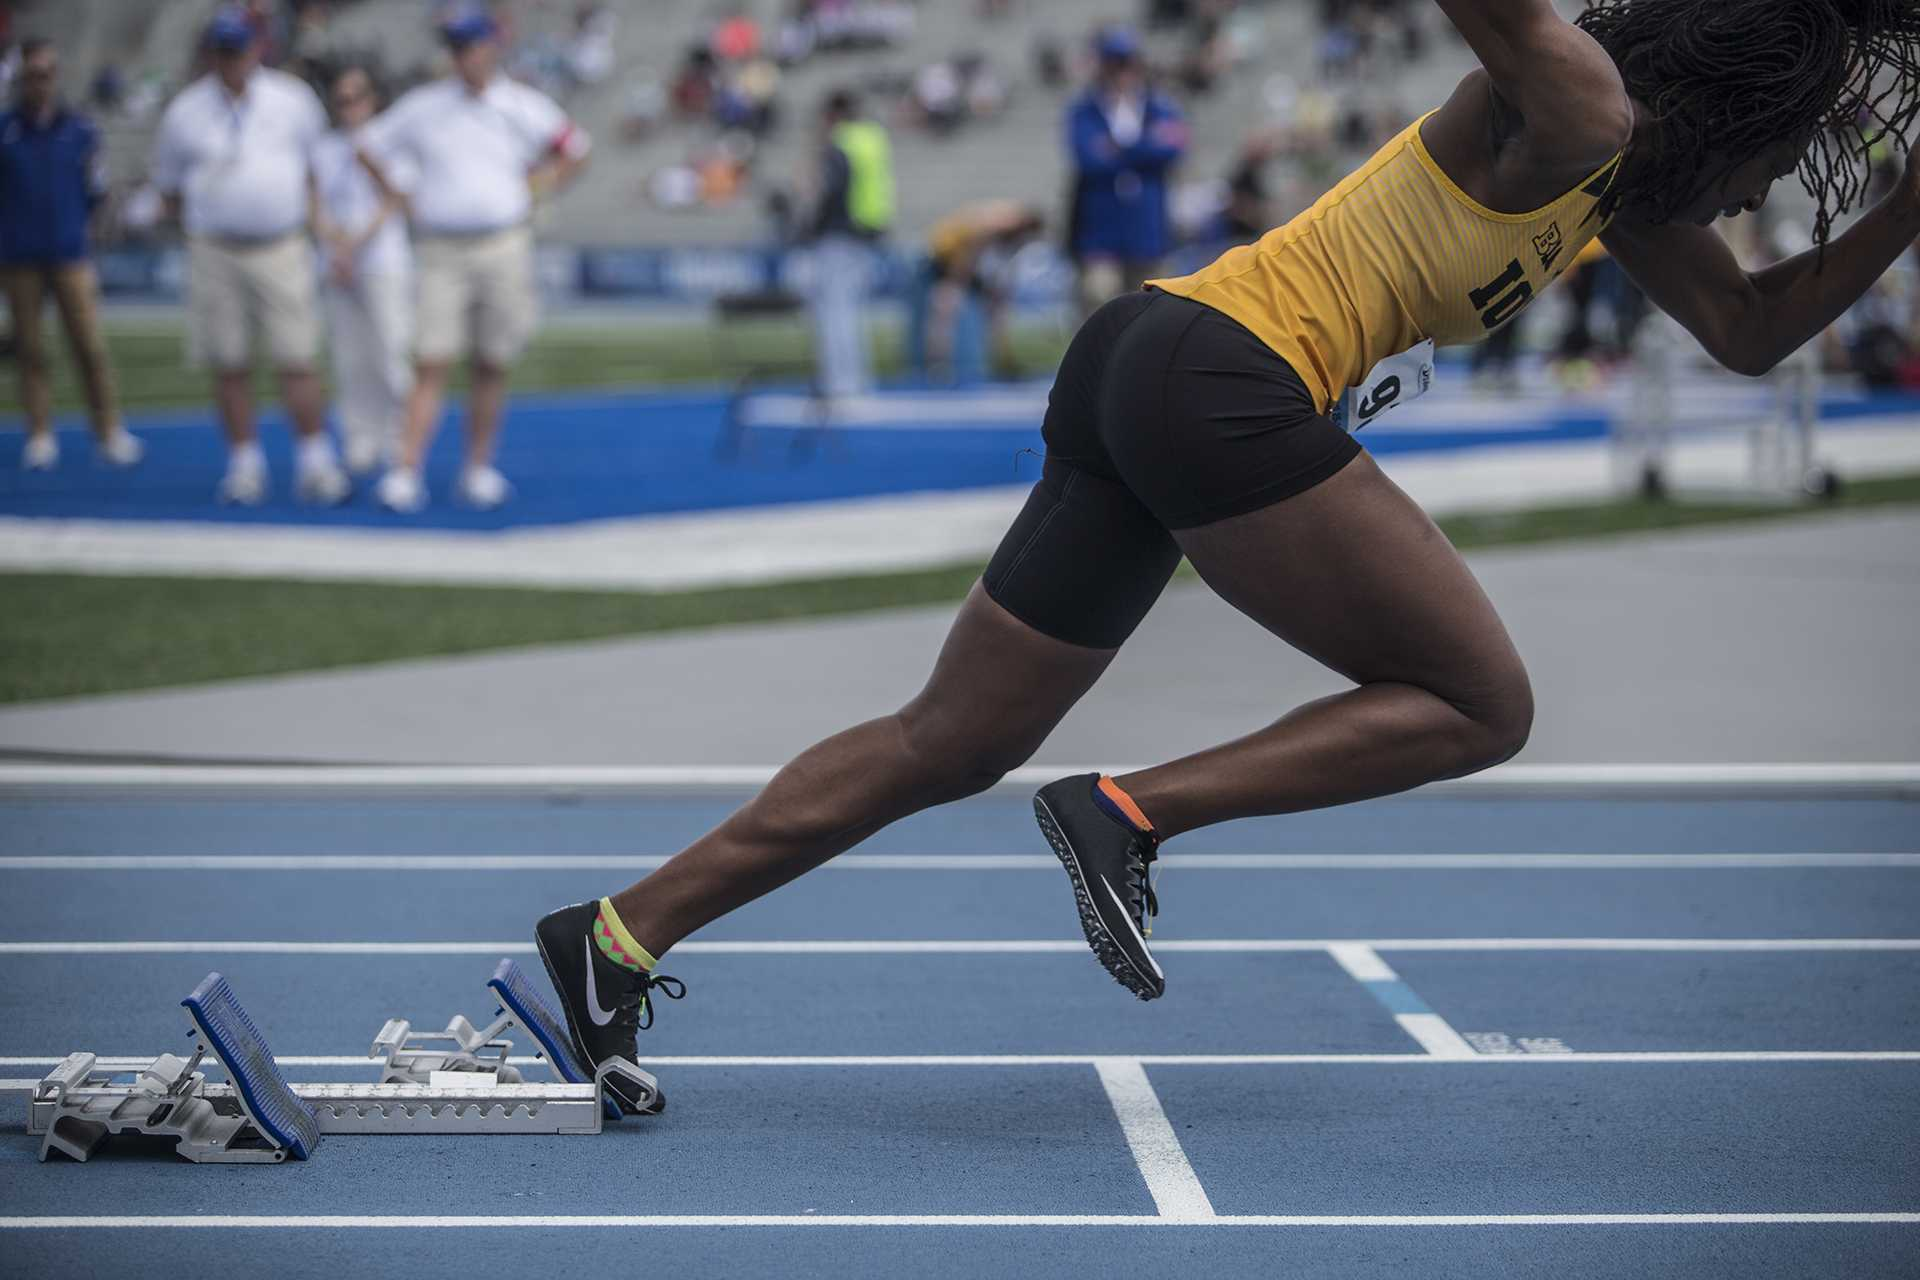 Iowa's Jahisha Thomas starts off the blocks during the womens' 4x100 meter relay in the 2018 Drake Relays at Drake Stadium in Des Moines, Iowa on Friday, April 27, 2018. Iowa finished second with a time of 45.58. (Ben Allan Smith/The Daily Iowan)